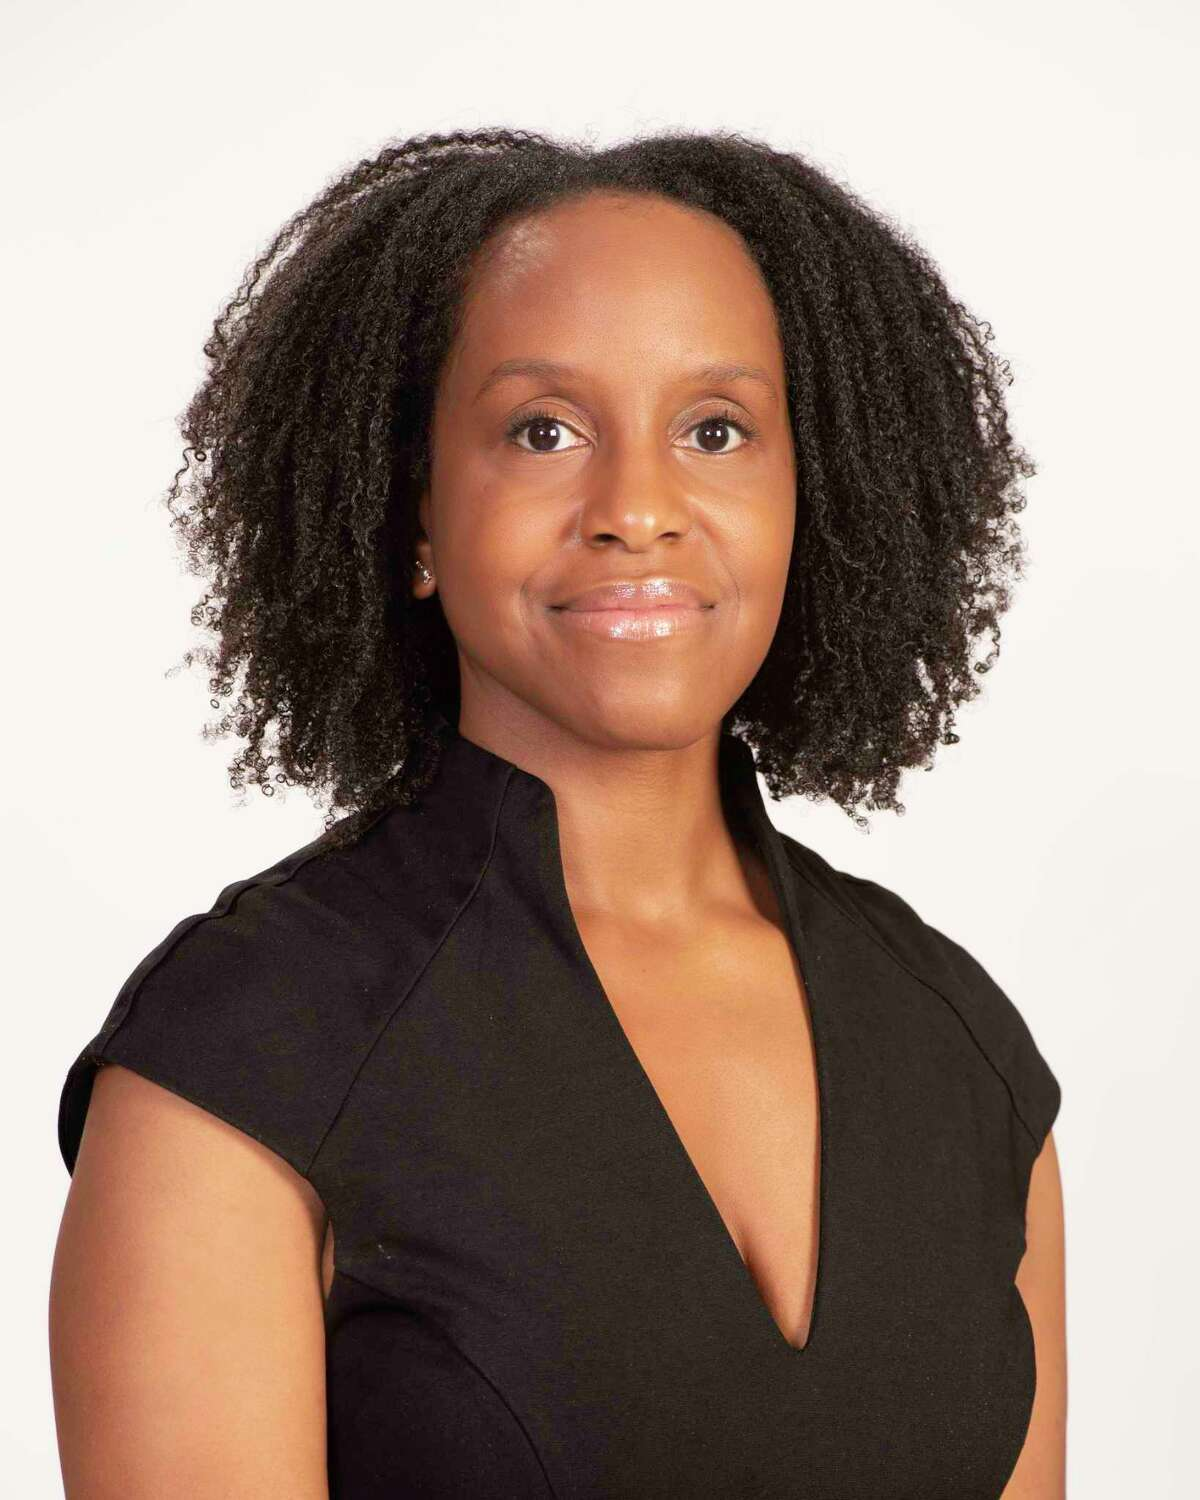 Community Health Center physician Tichianaa Armah is medical director and vice president of behavioral health for the Middletown agency.